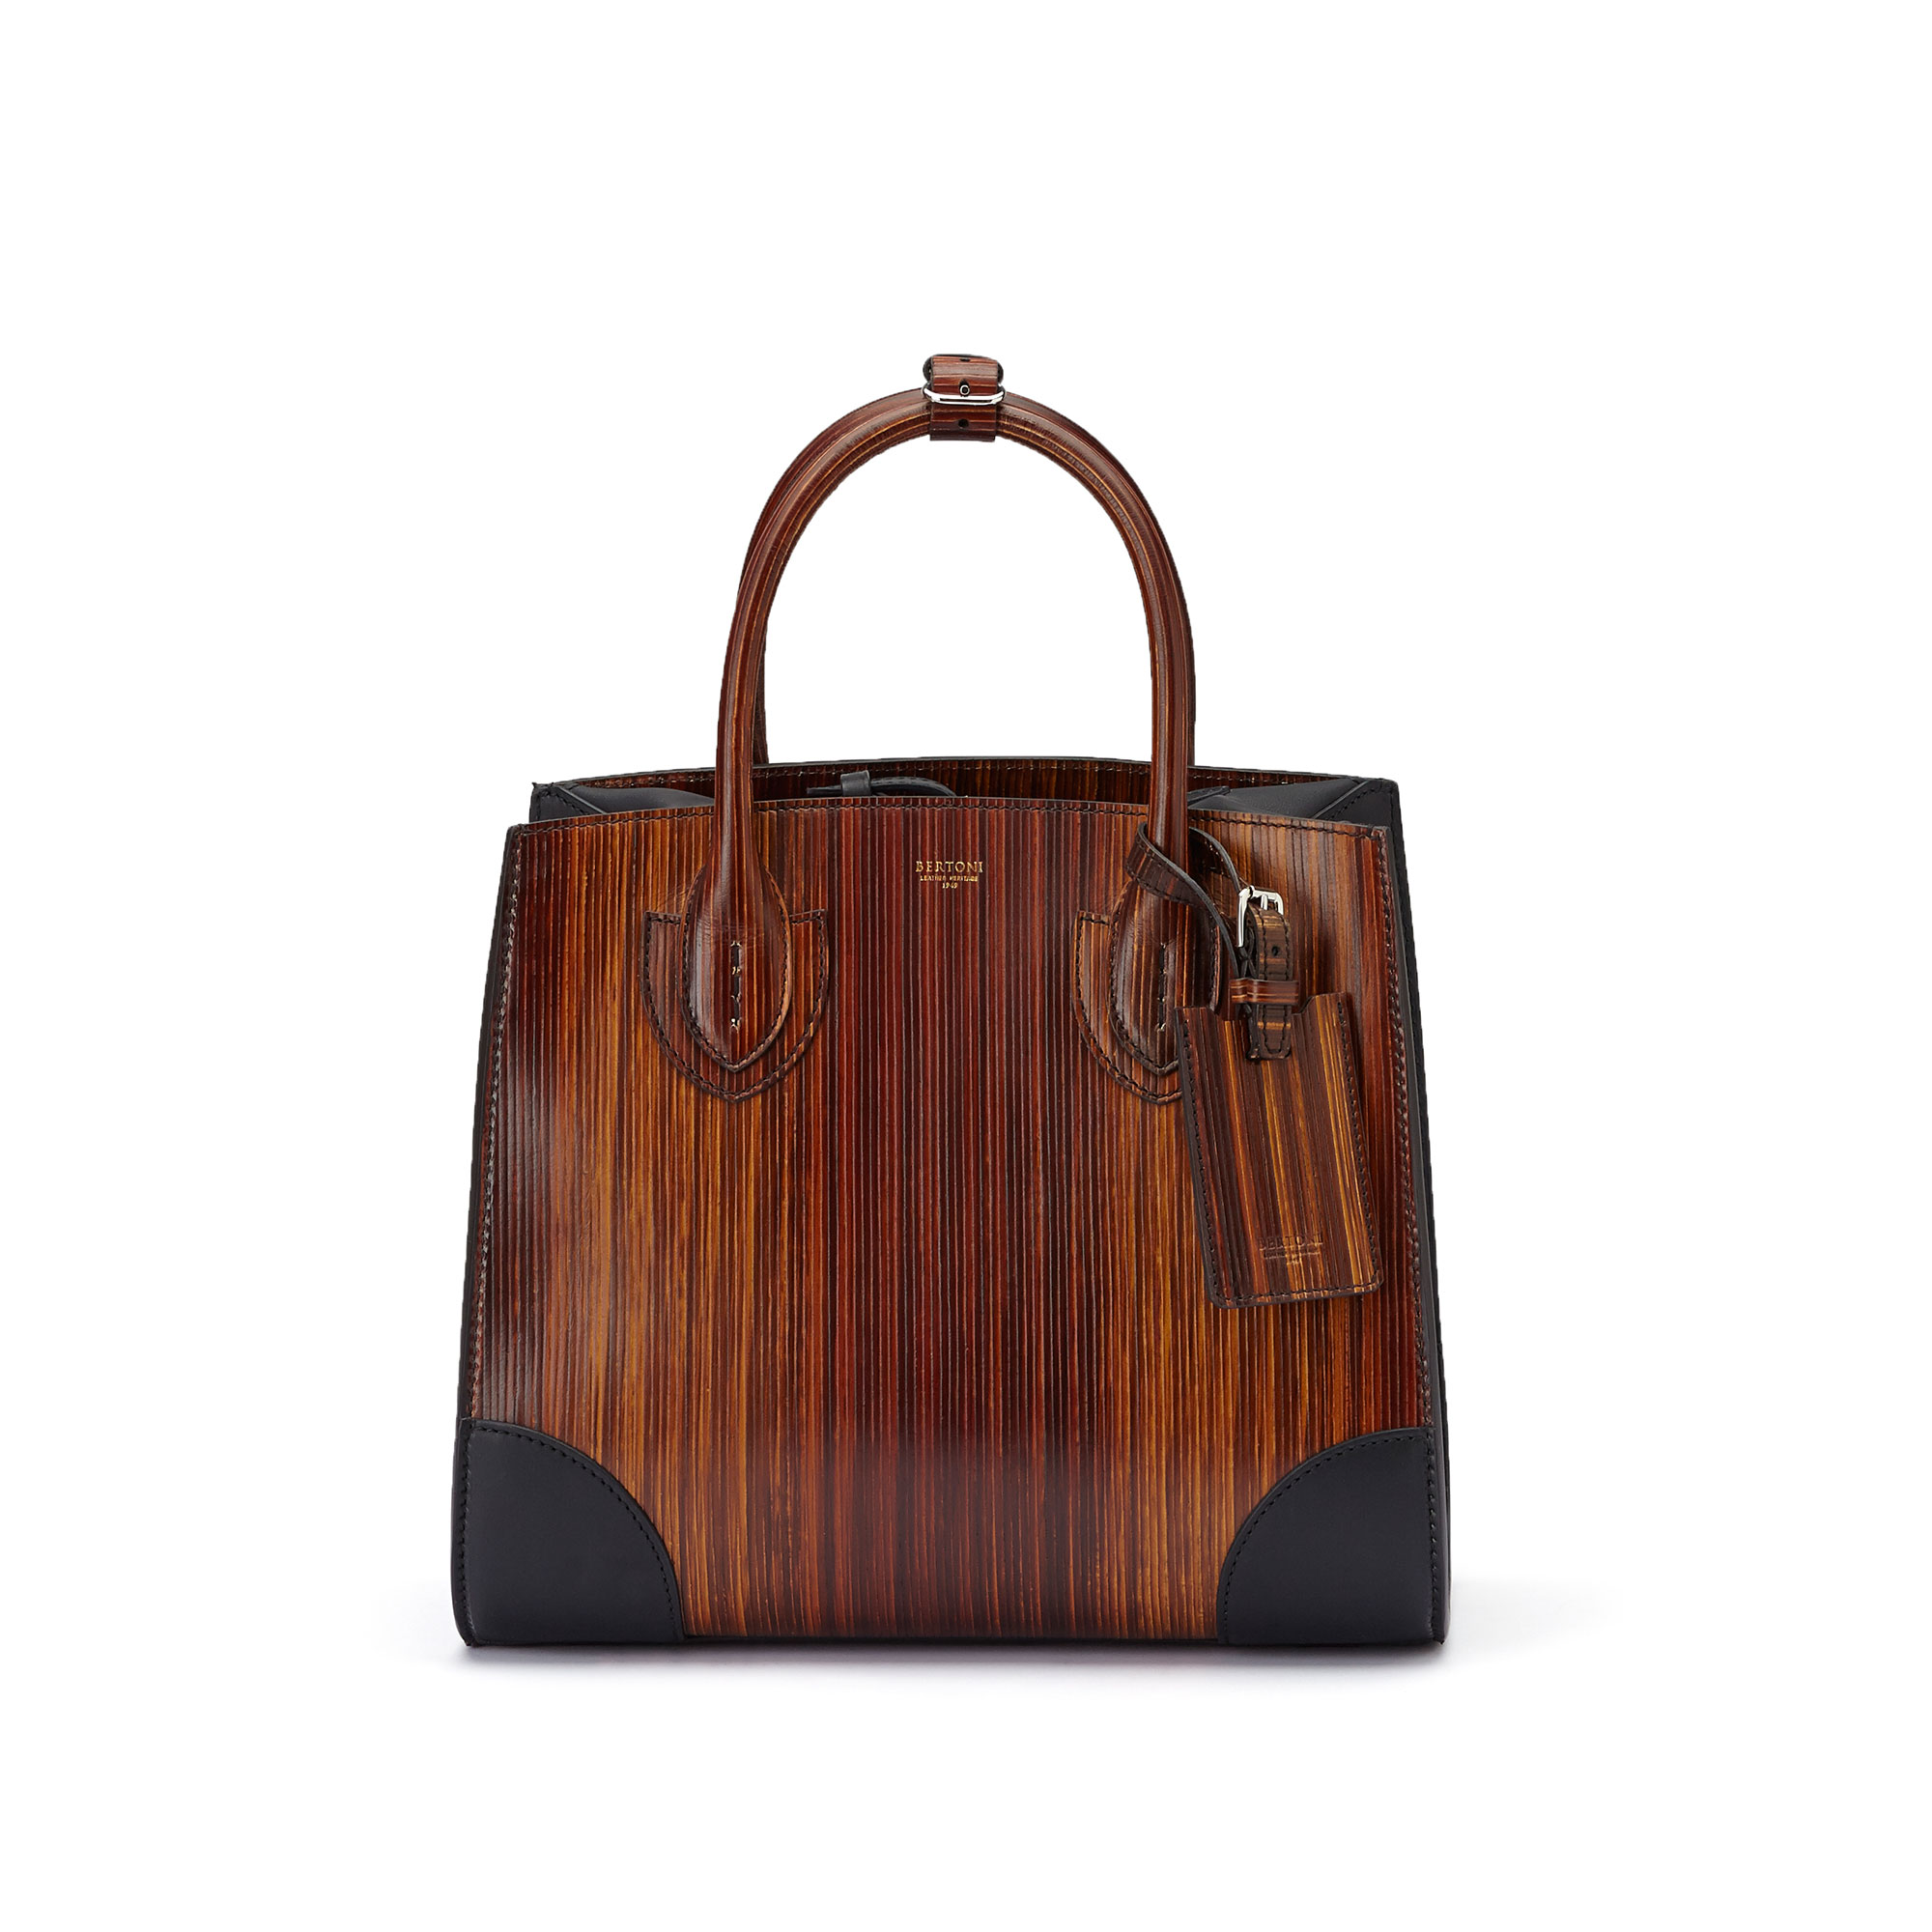 The wood effect french calf wood leather Darcy medium bag by Bertoni 1949 02